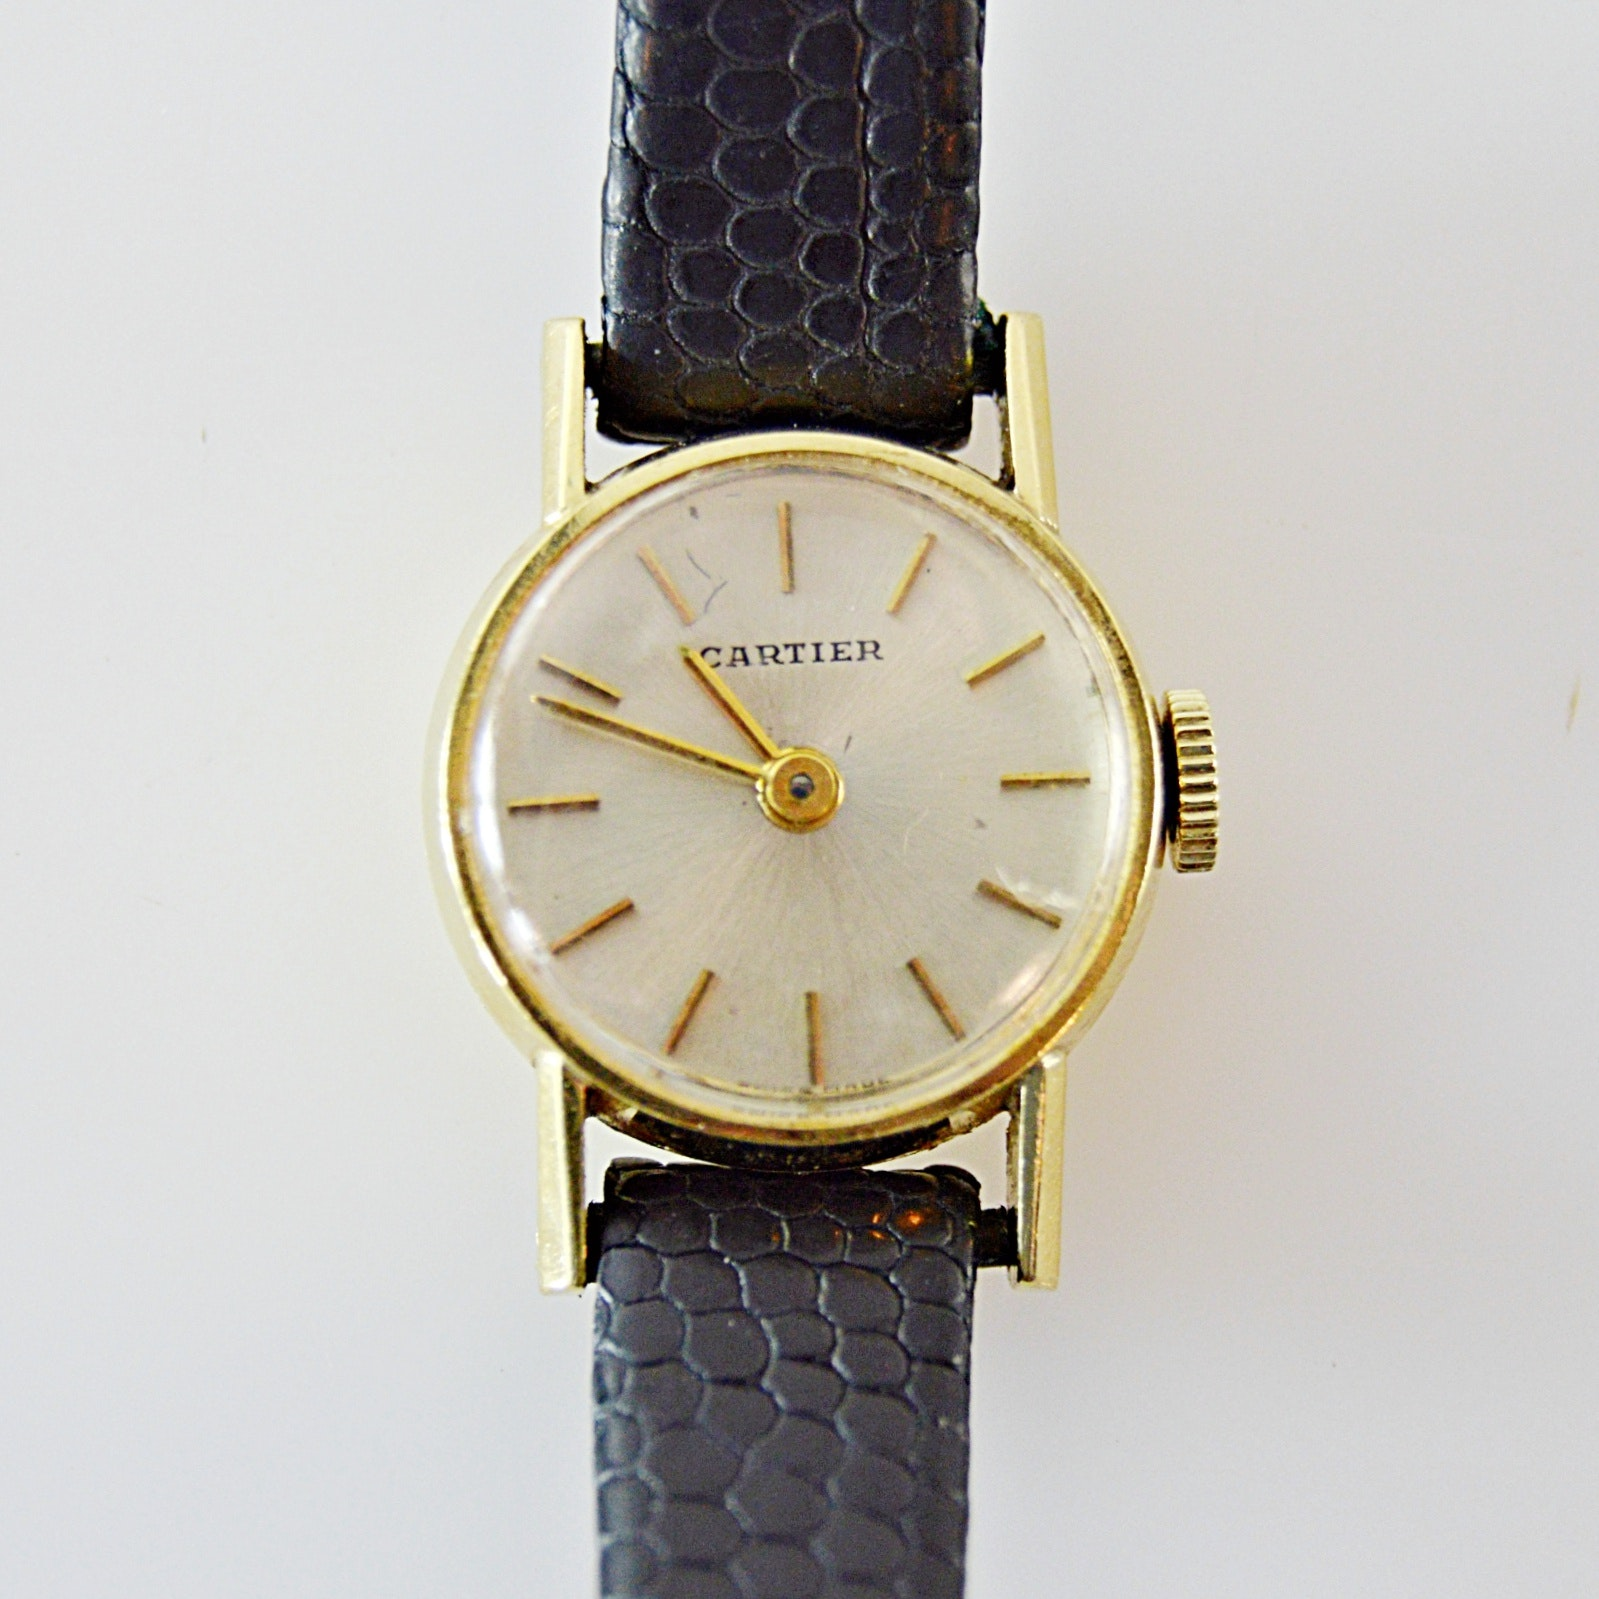 Cartier 18K Yellow Gold Swiss Made Wristwatch With Lizard Leather Strap